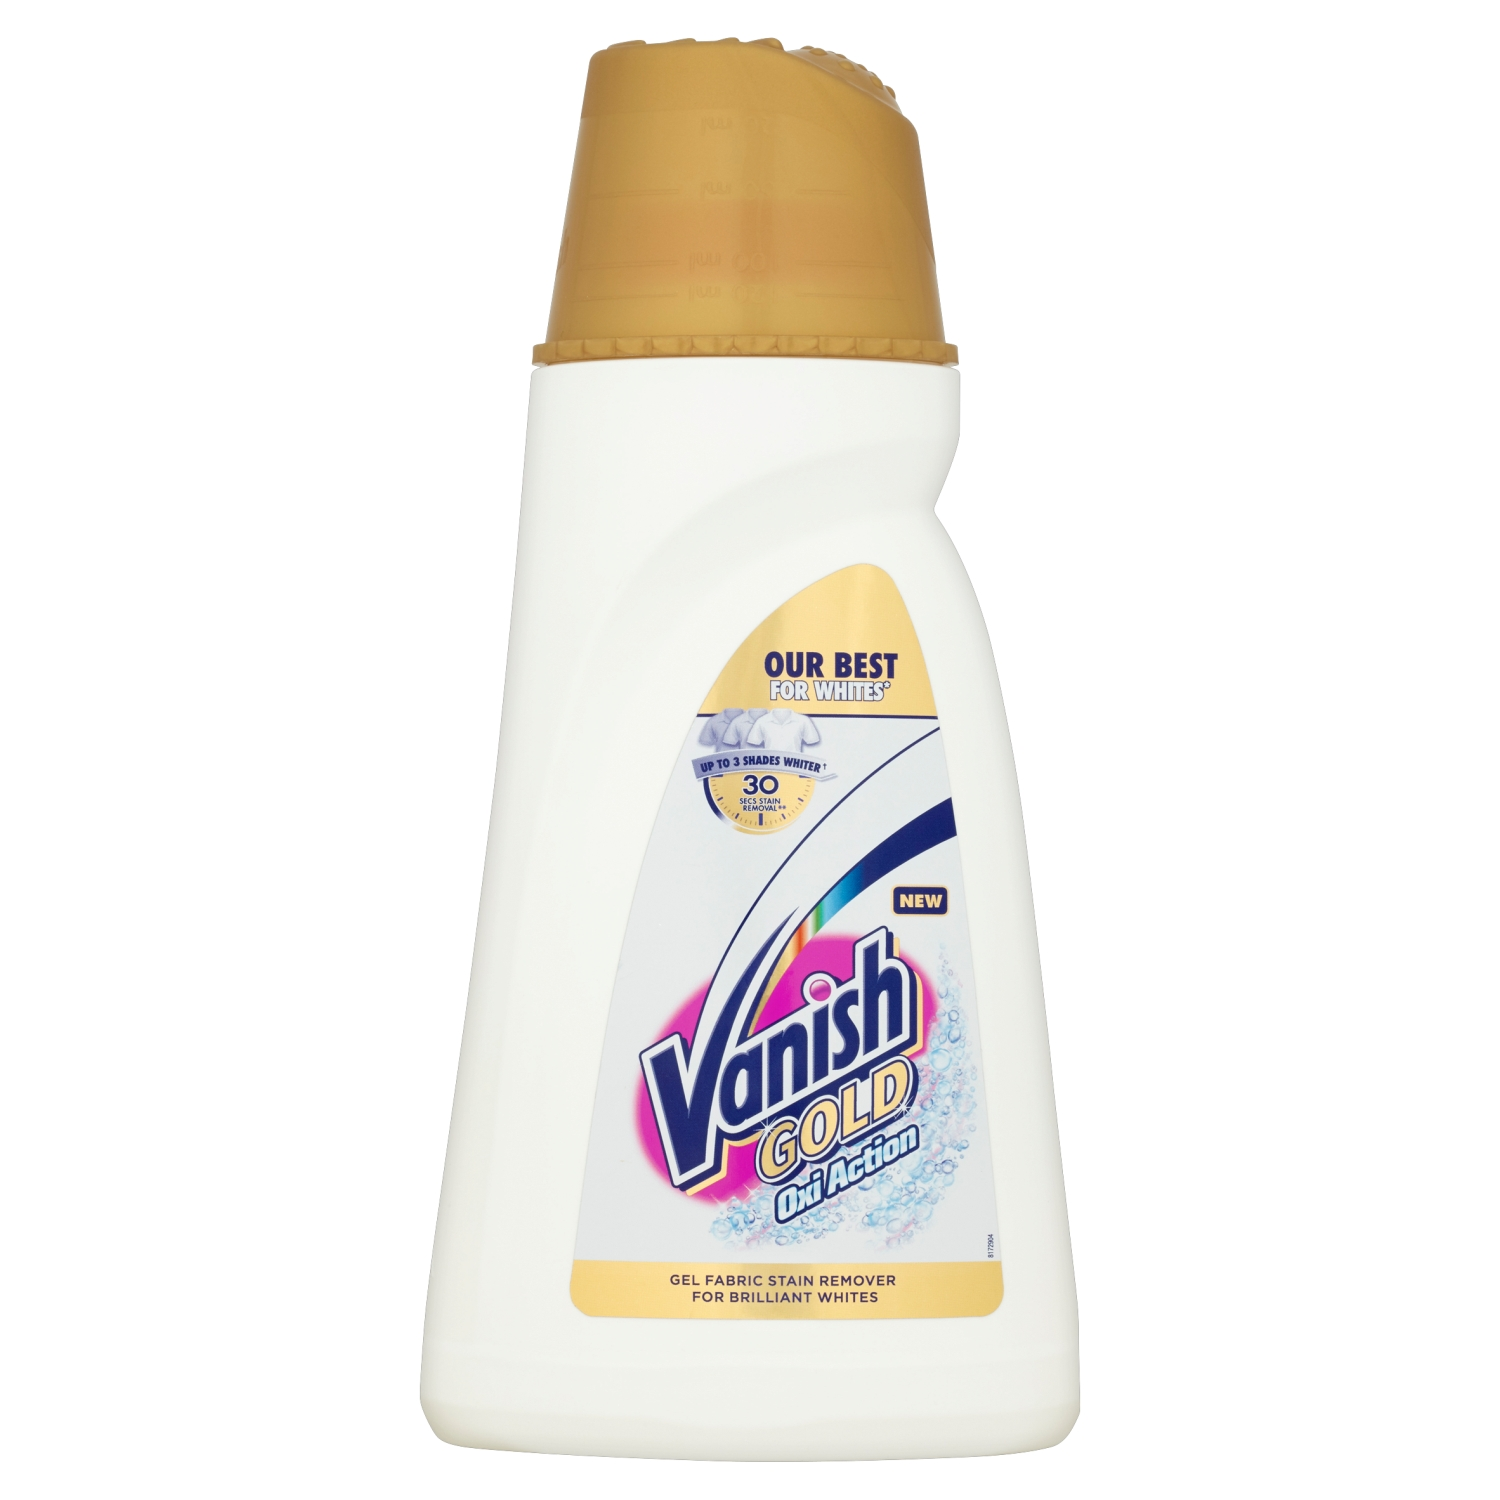 Vanish Gold For Whites Gel